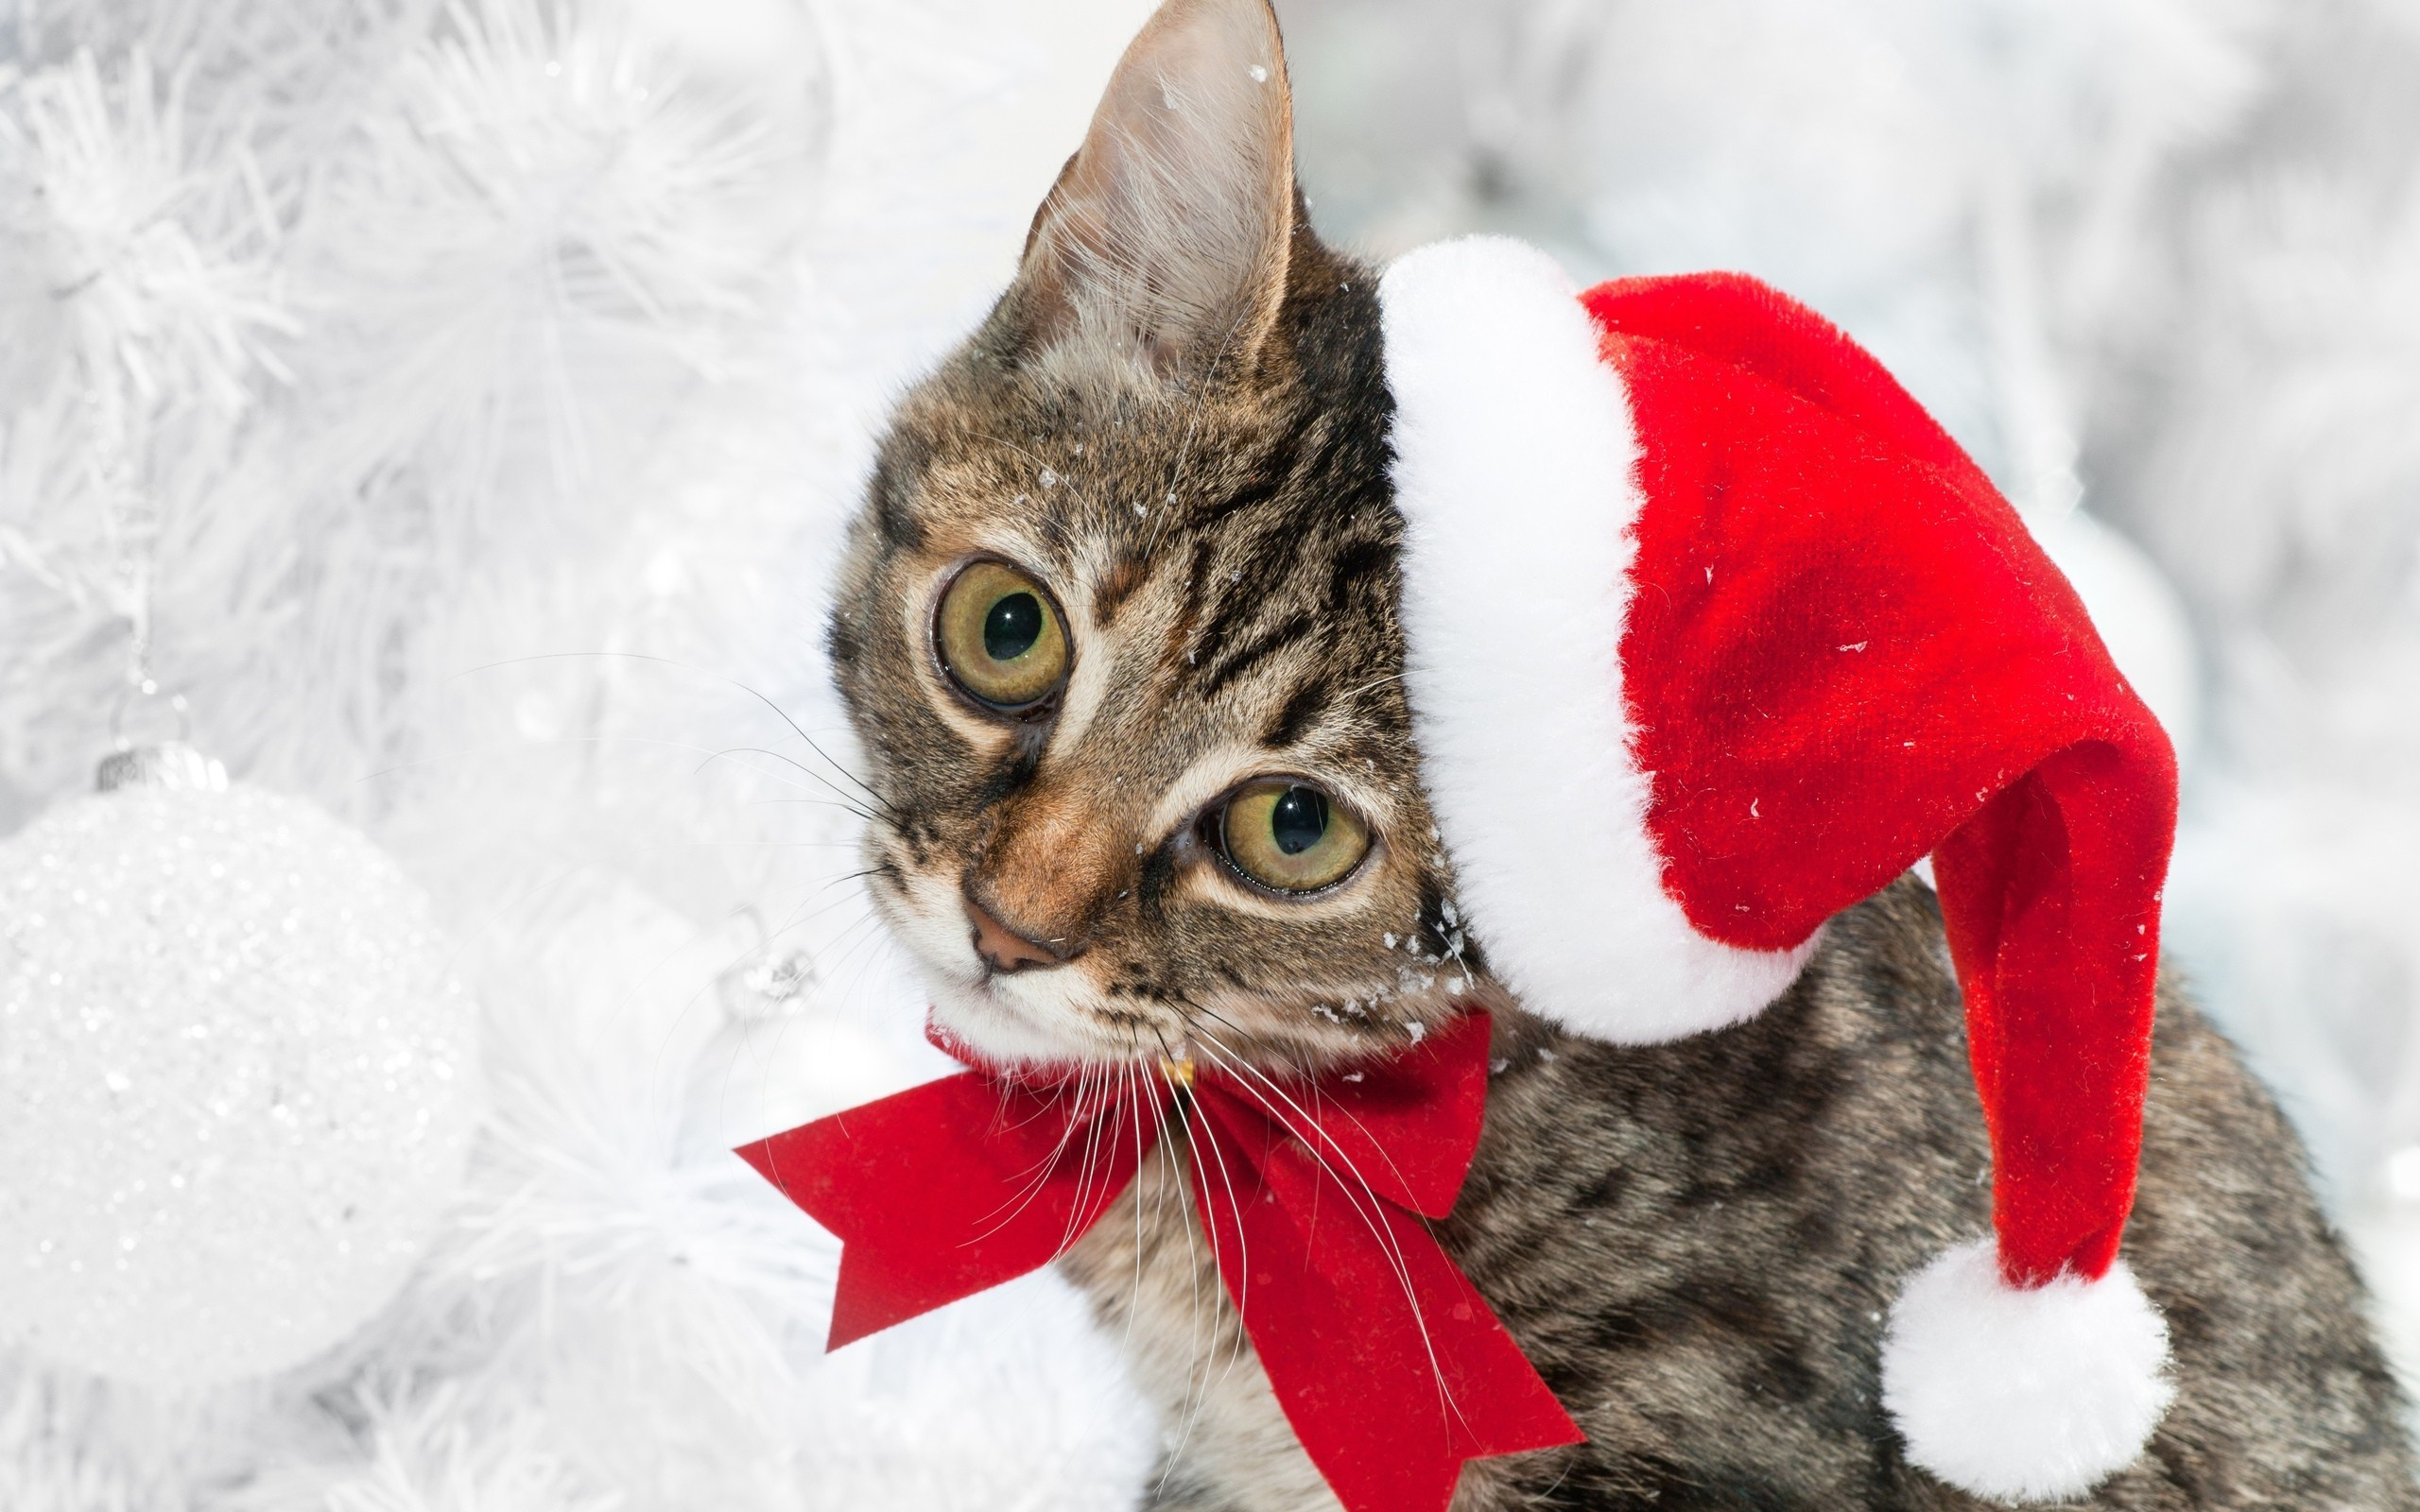 2560x1600 The Christmas Kitty wallpaper